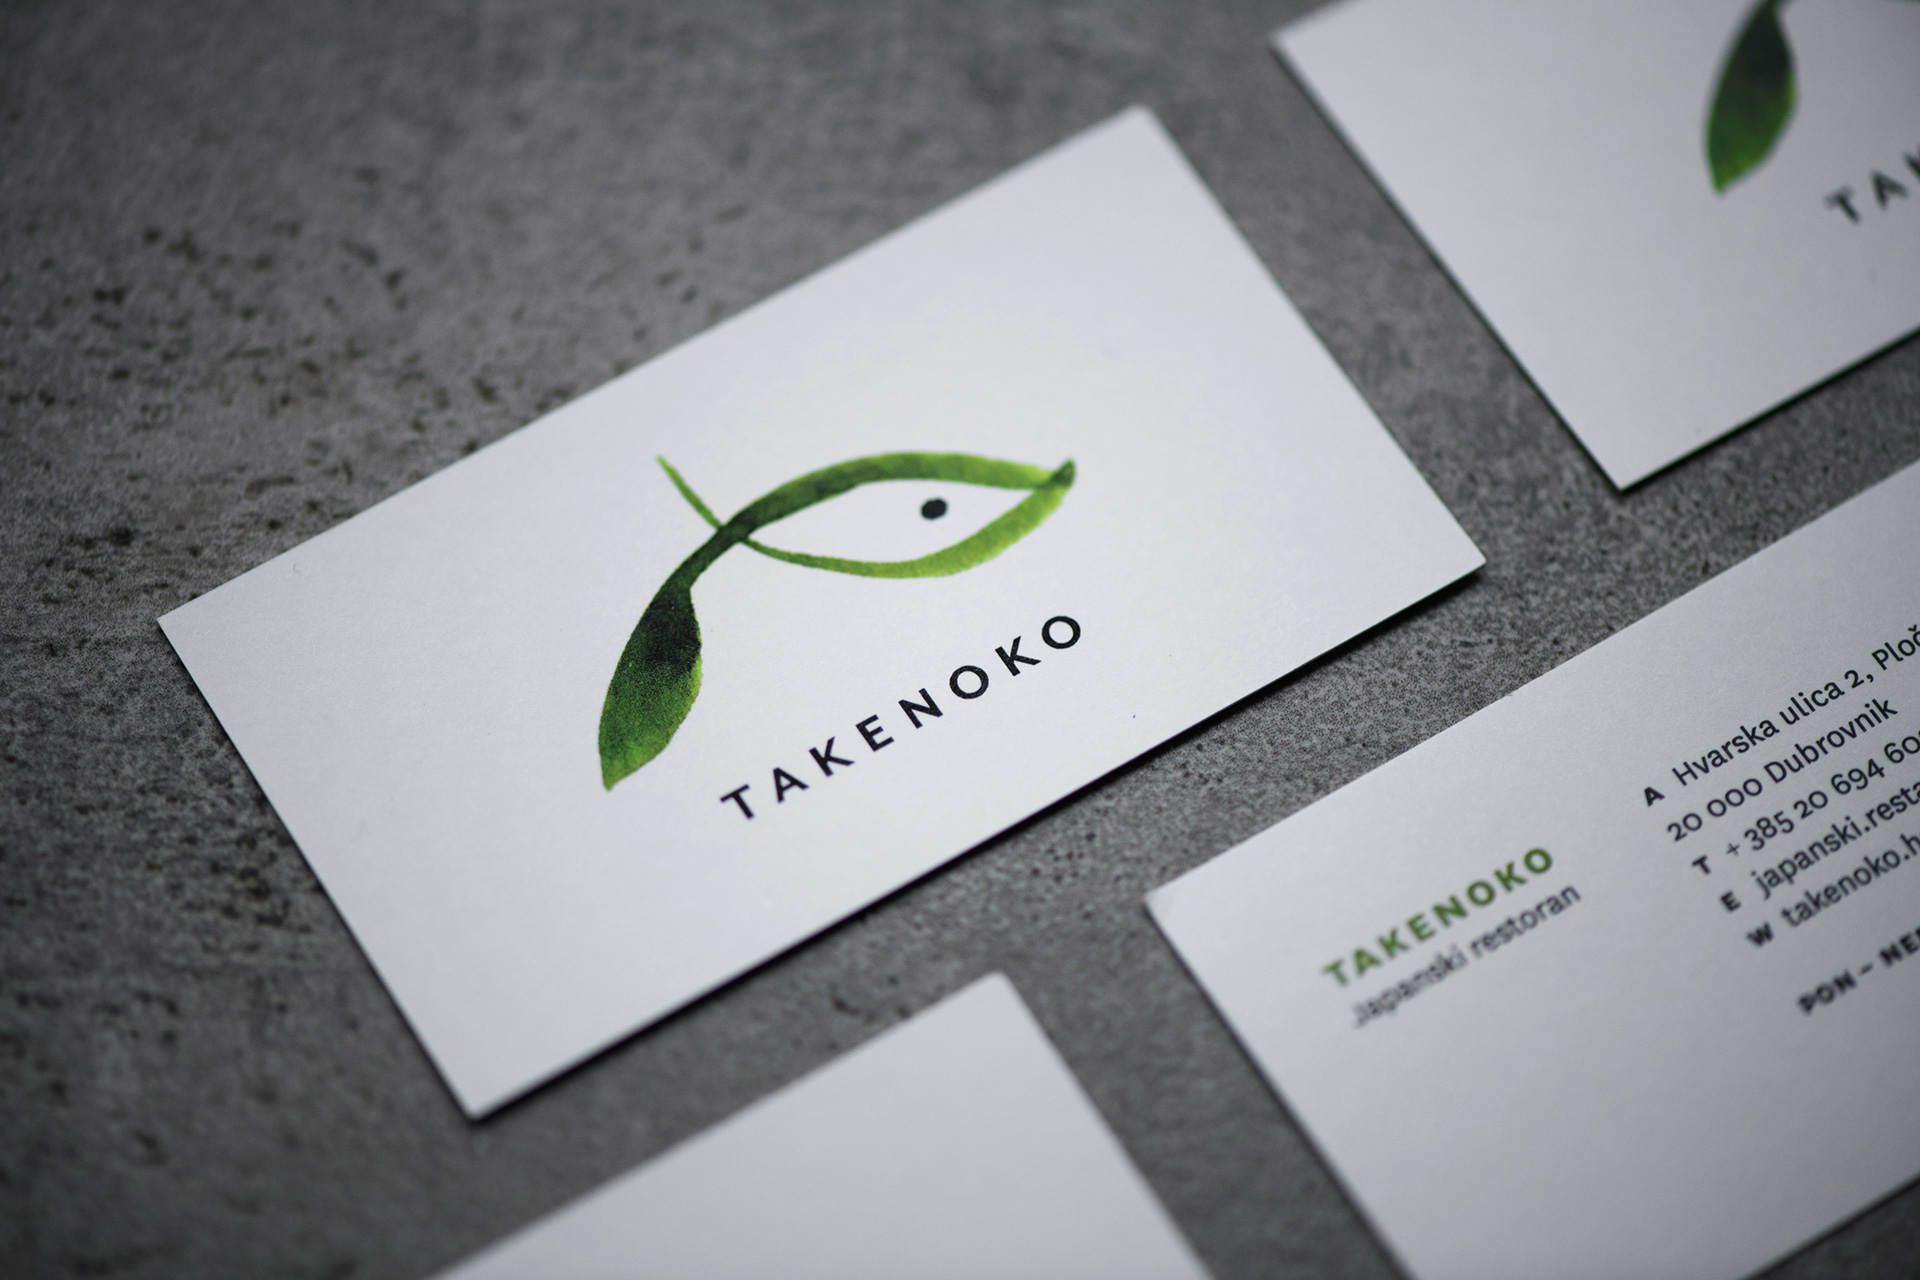 Takenoko_business-card_1